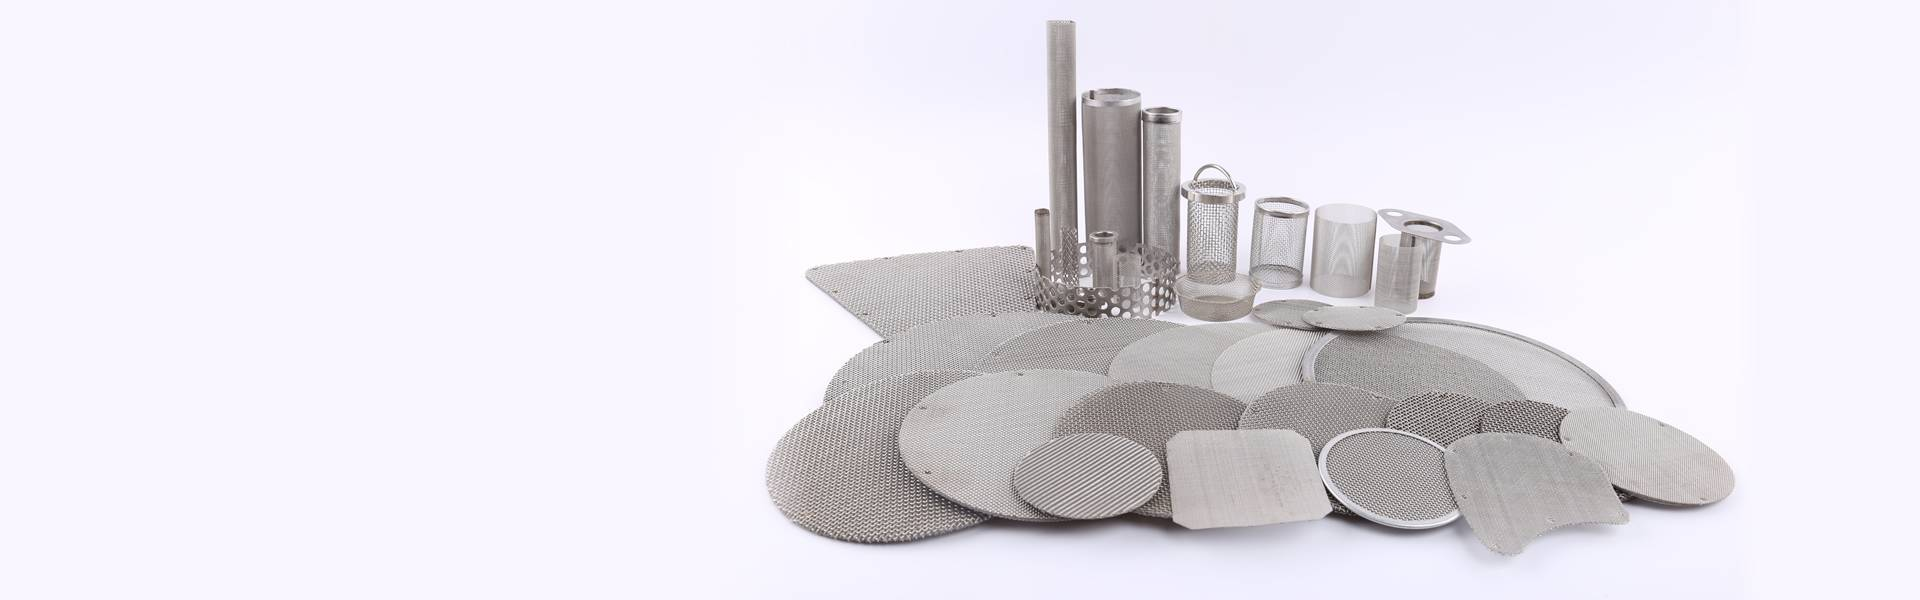 There's a series of wire mesh filters with different shapes such as round disc, basket filter, cylindrical filter, etc.